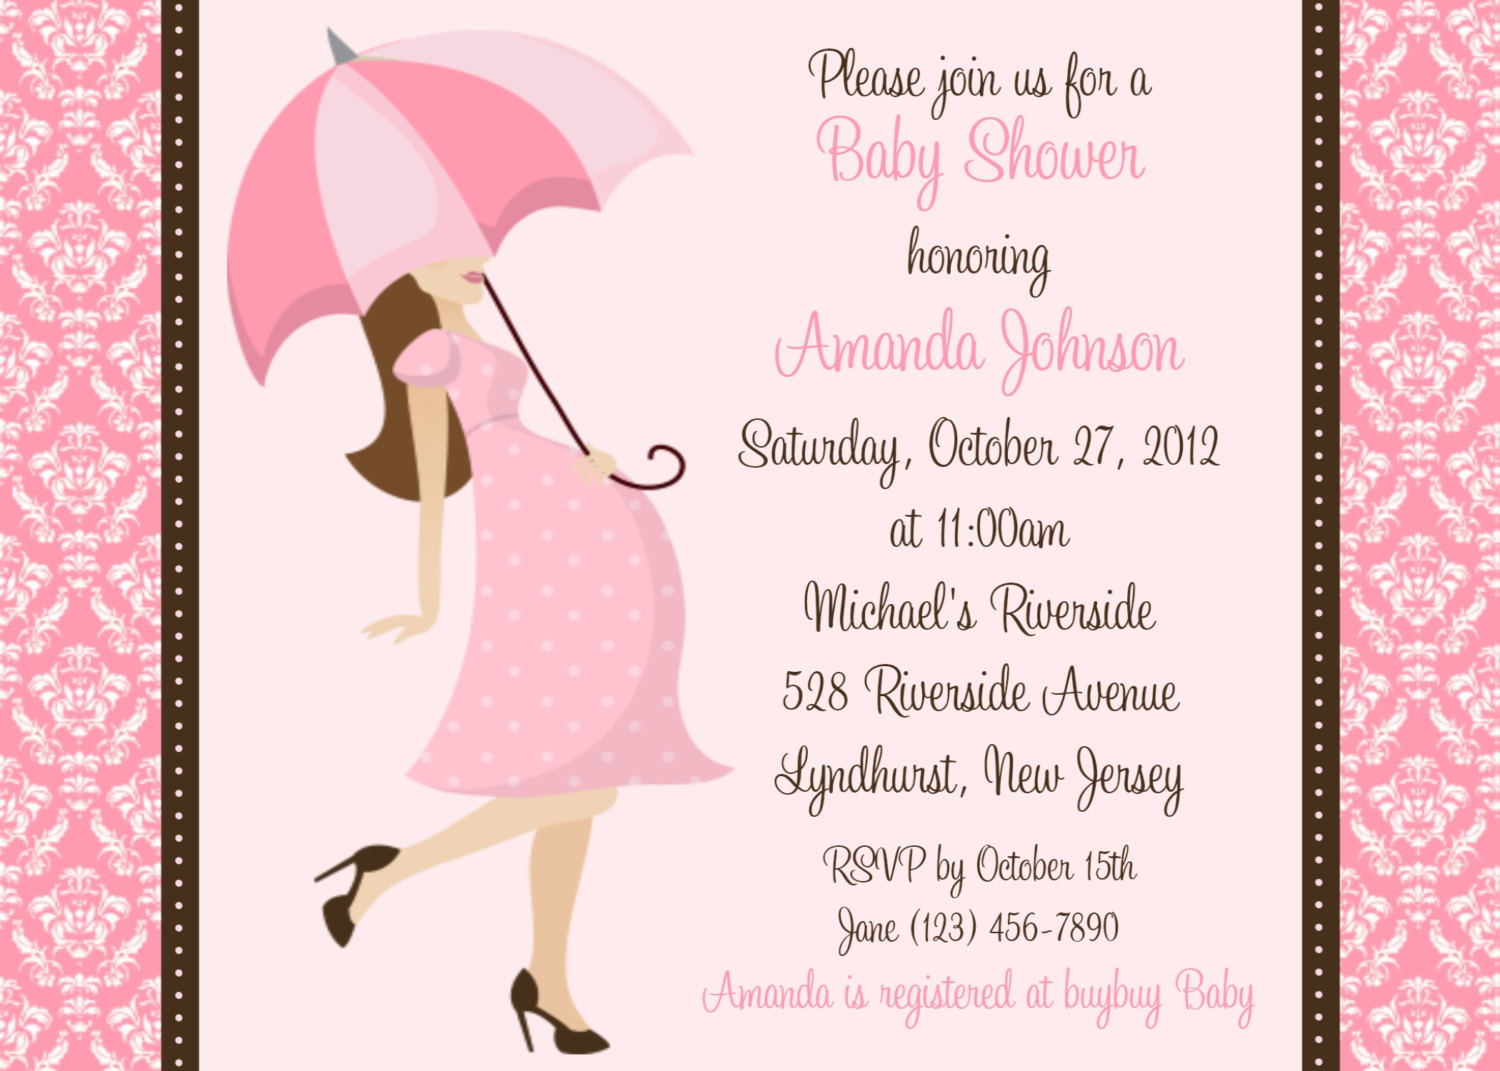 Baby shower invitation wording baby shower invitation wording life filmwisefo